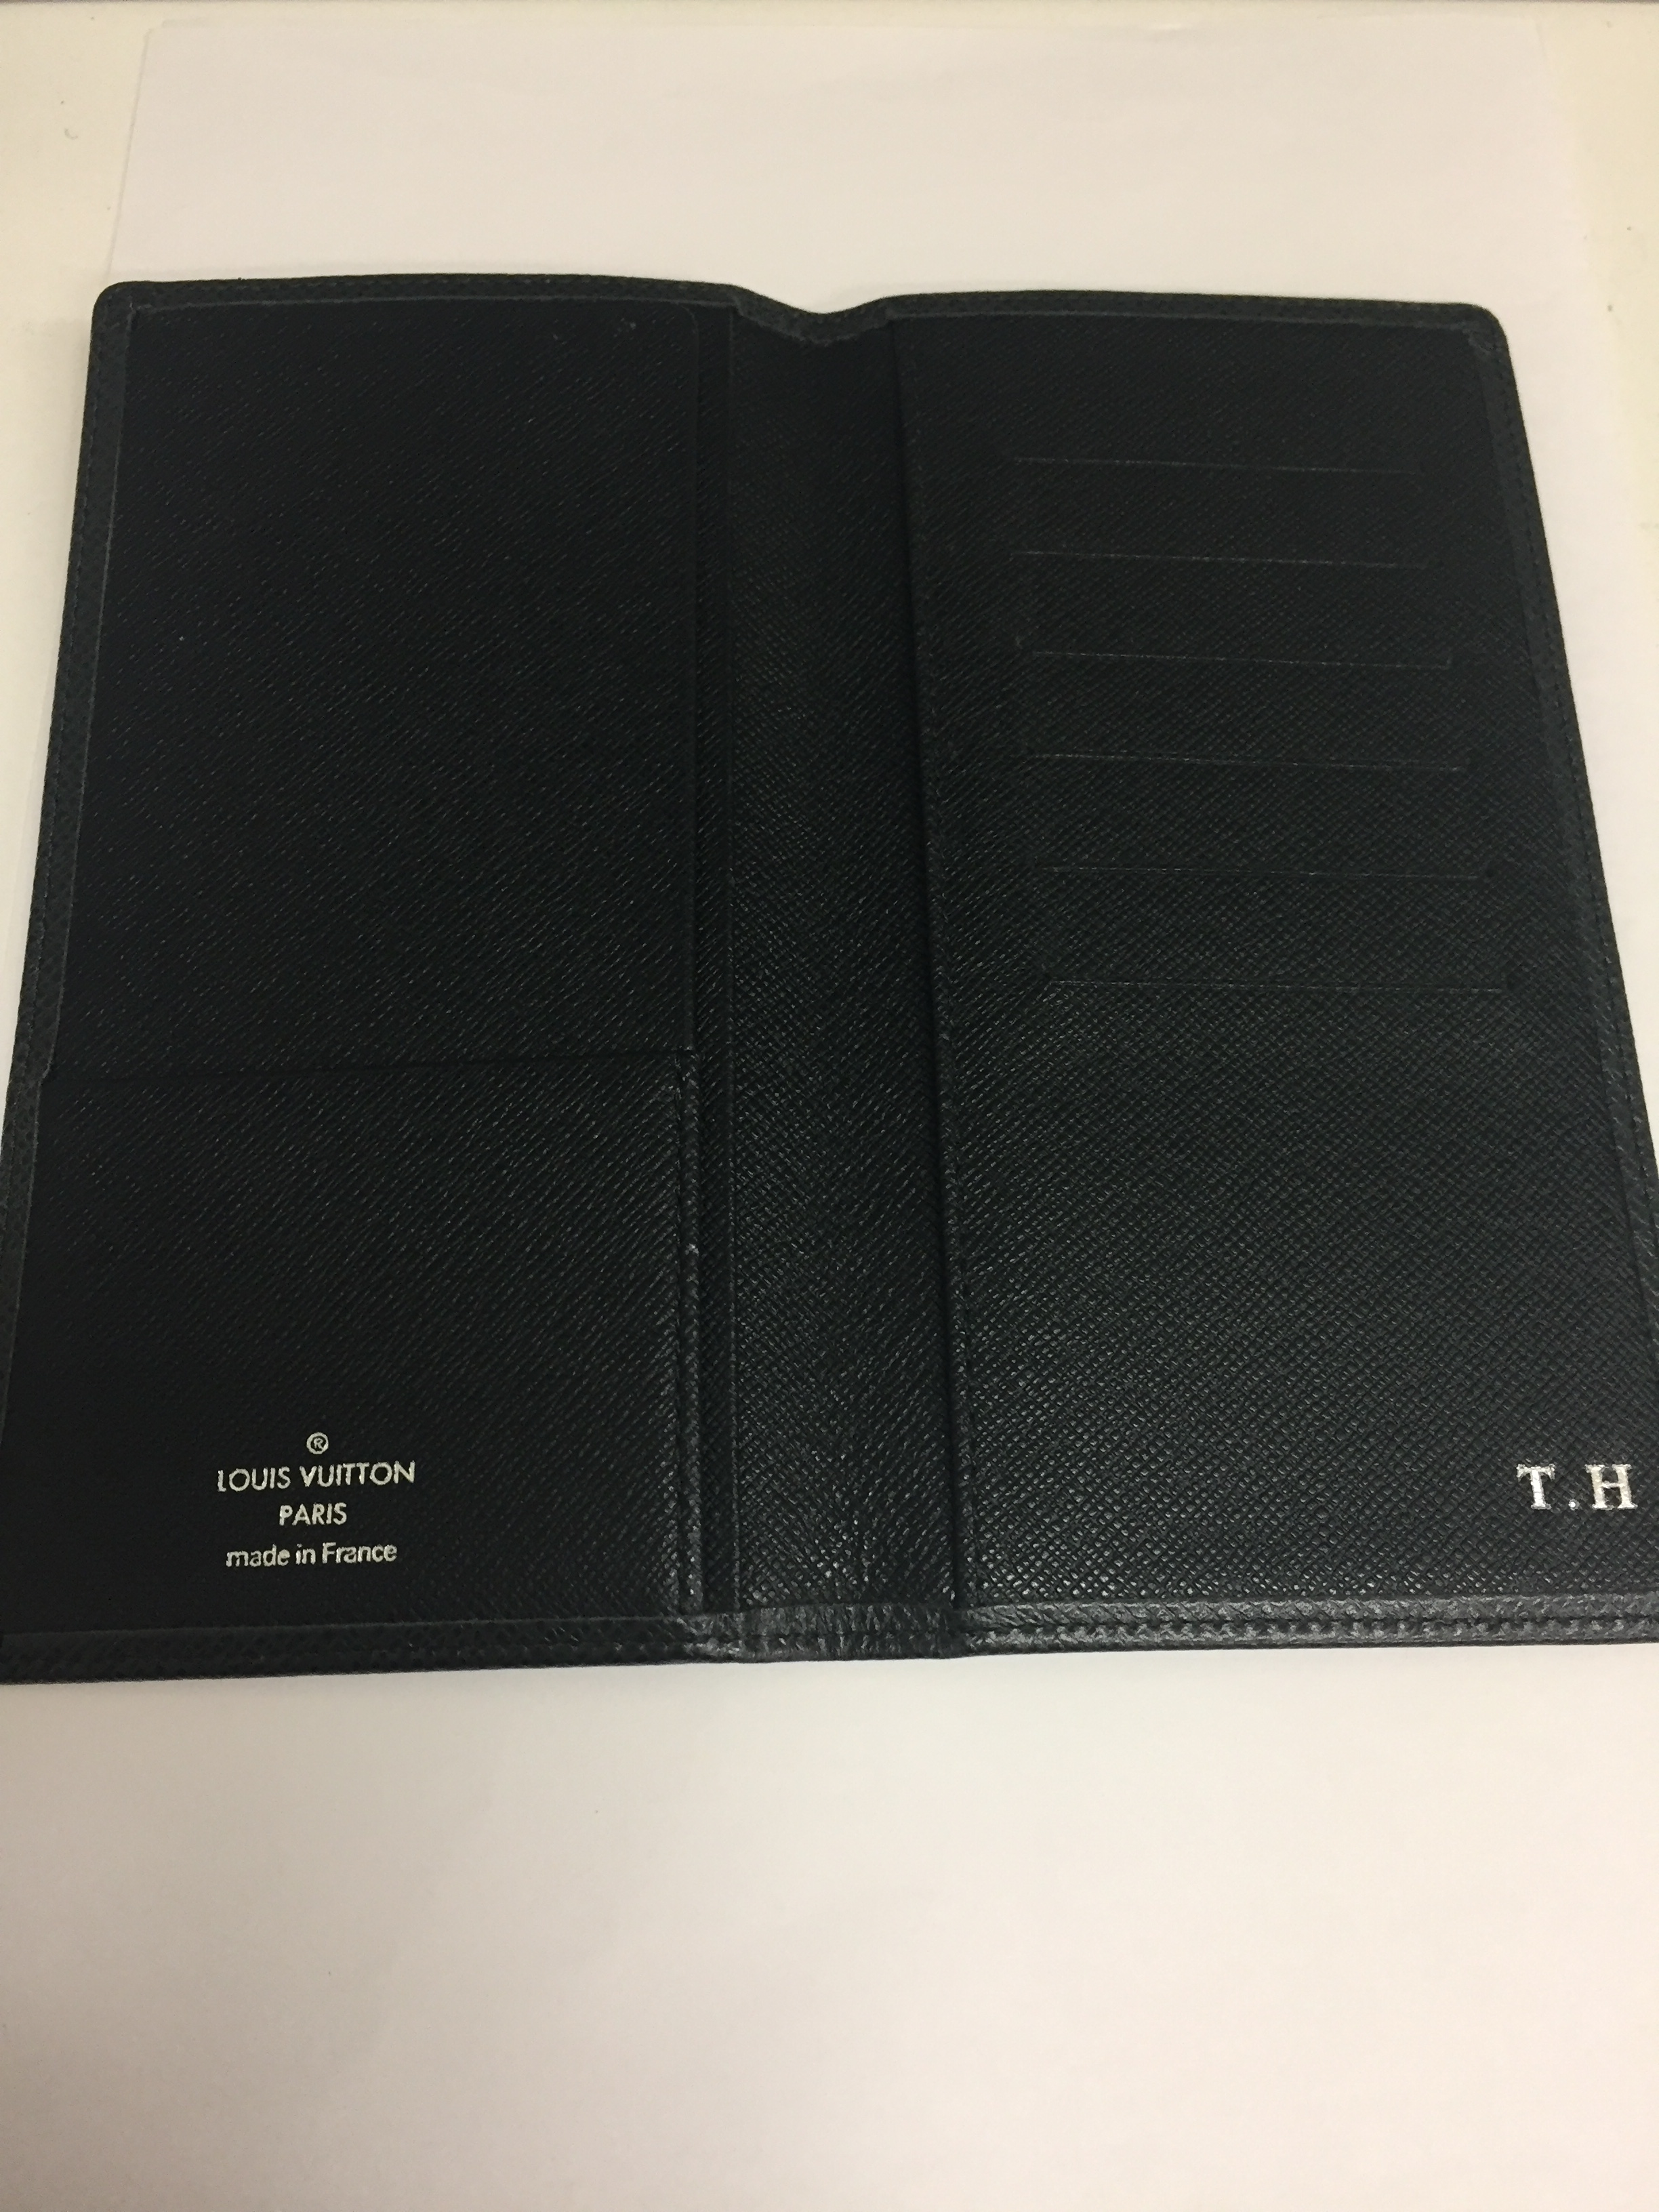 d31ce0a5bfe1 LOUIS VUITTON ルイヴィトン財布 札入れを売るなら知立市 大吉知立店へ!!